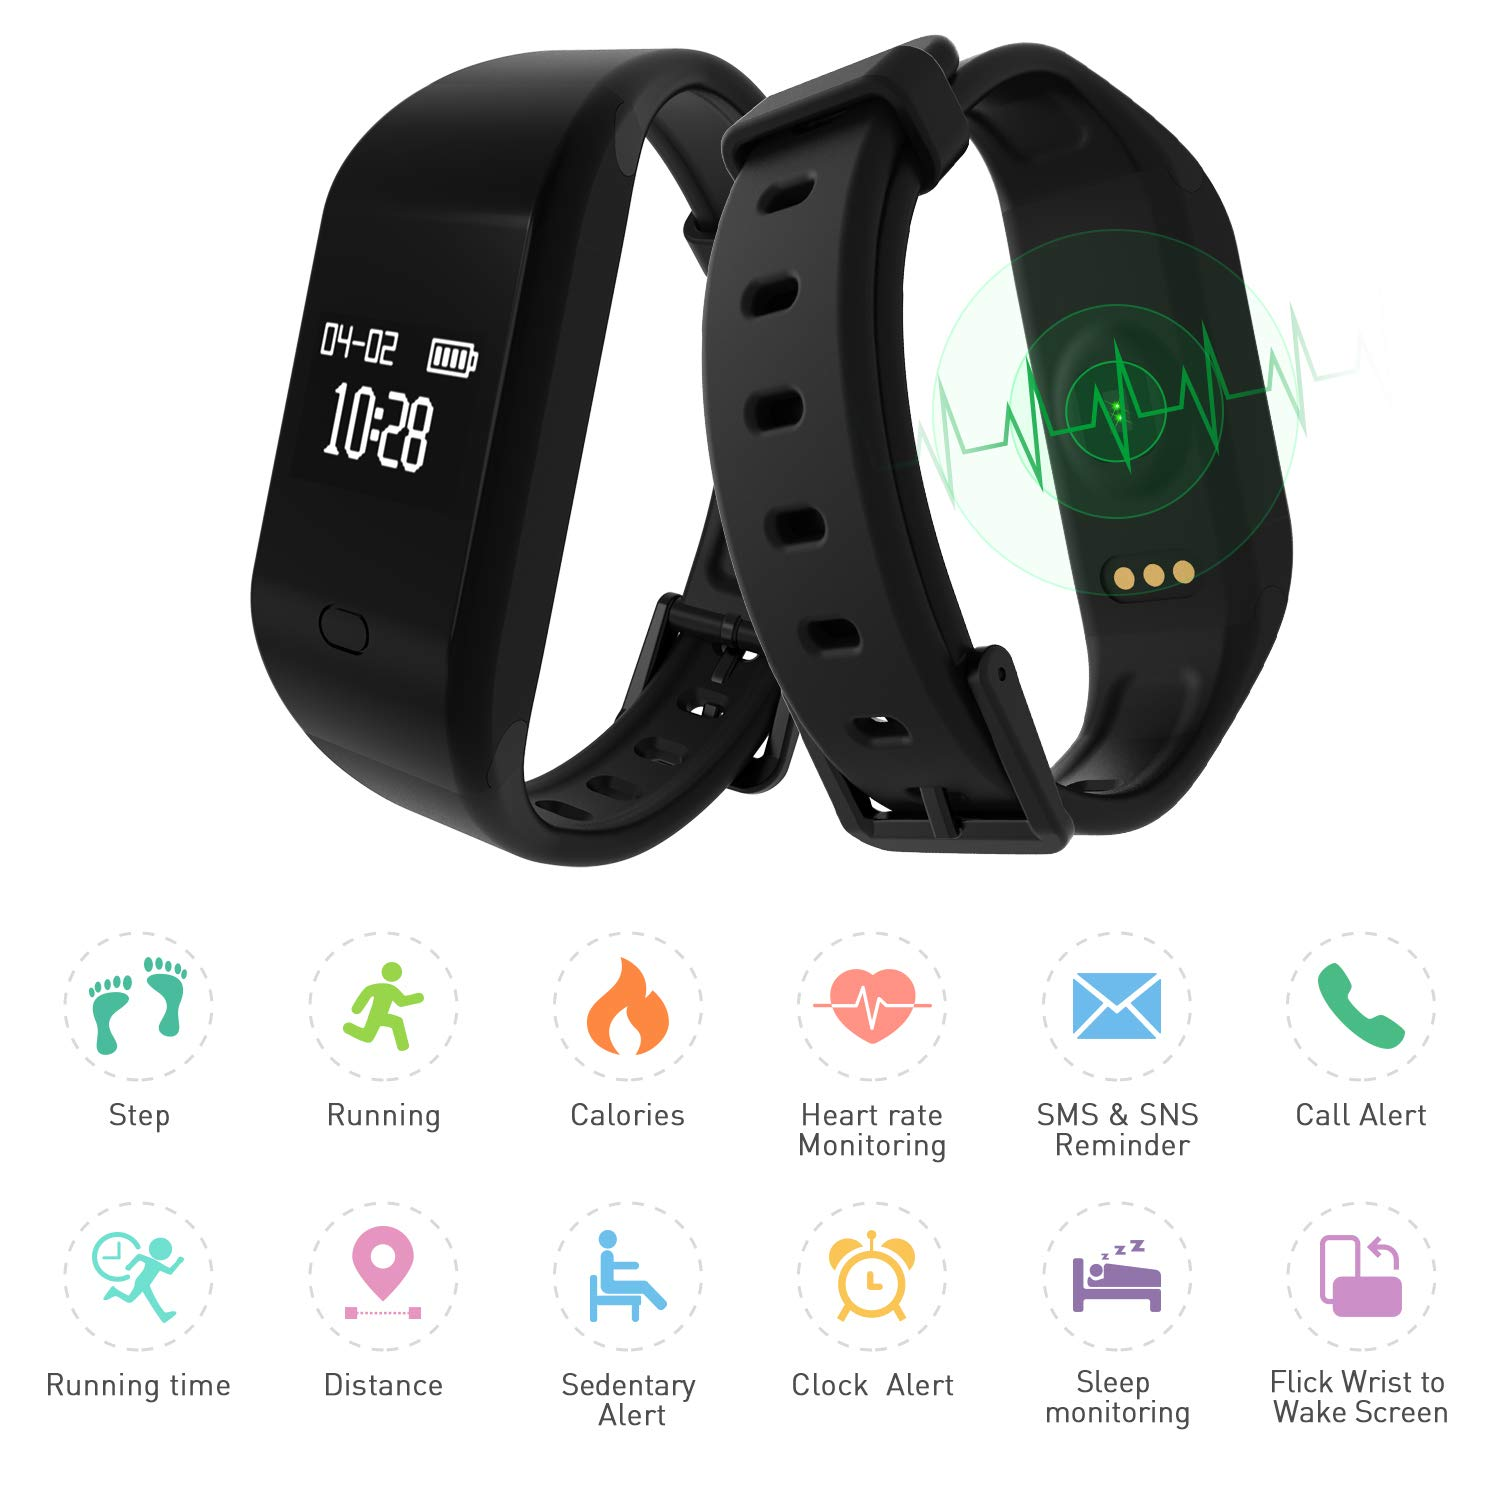 Fitpolo Fitness Tracker HRActivity Fit Tracker With Heart RateSleep MonitorPedometer StepCalorie CounterIP67 Waterproof Smart Watch Wristband For Kidsmenwomen For Iphone Android